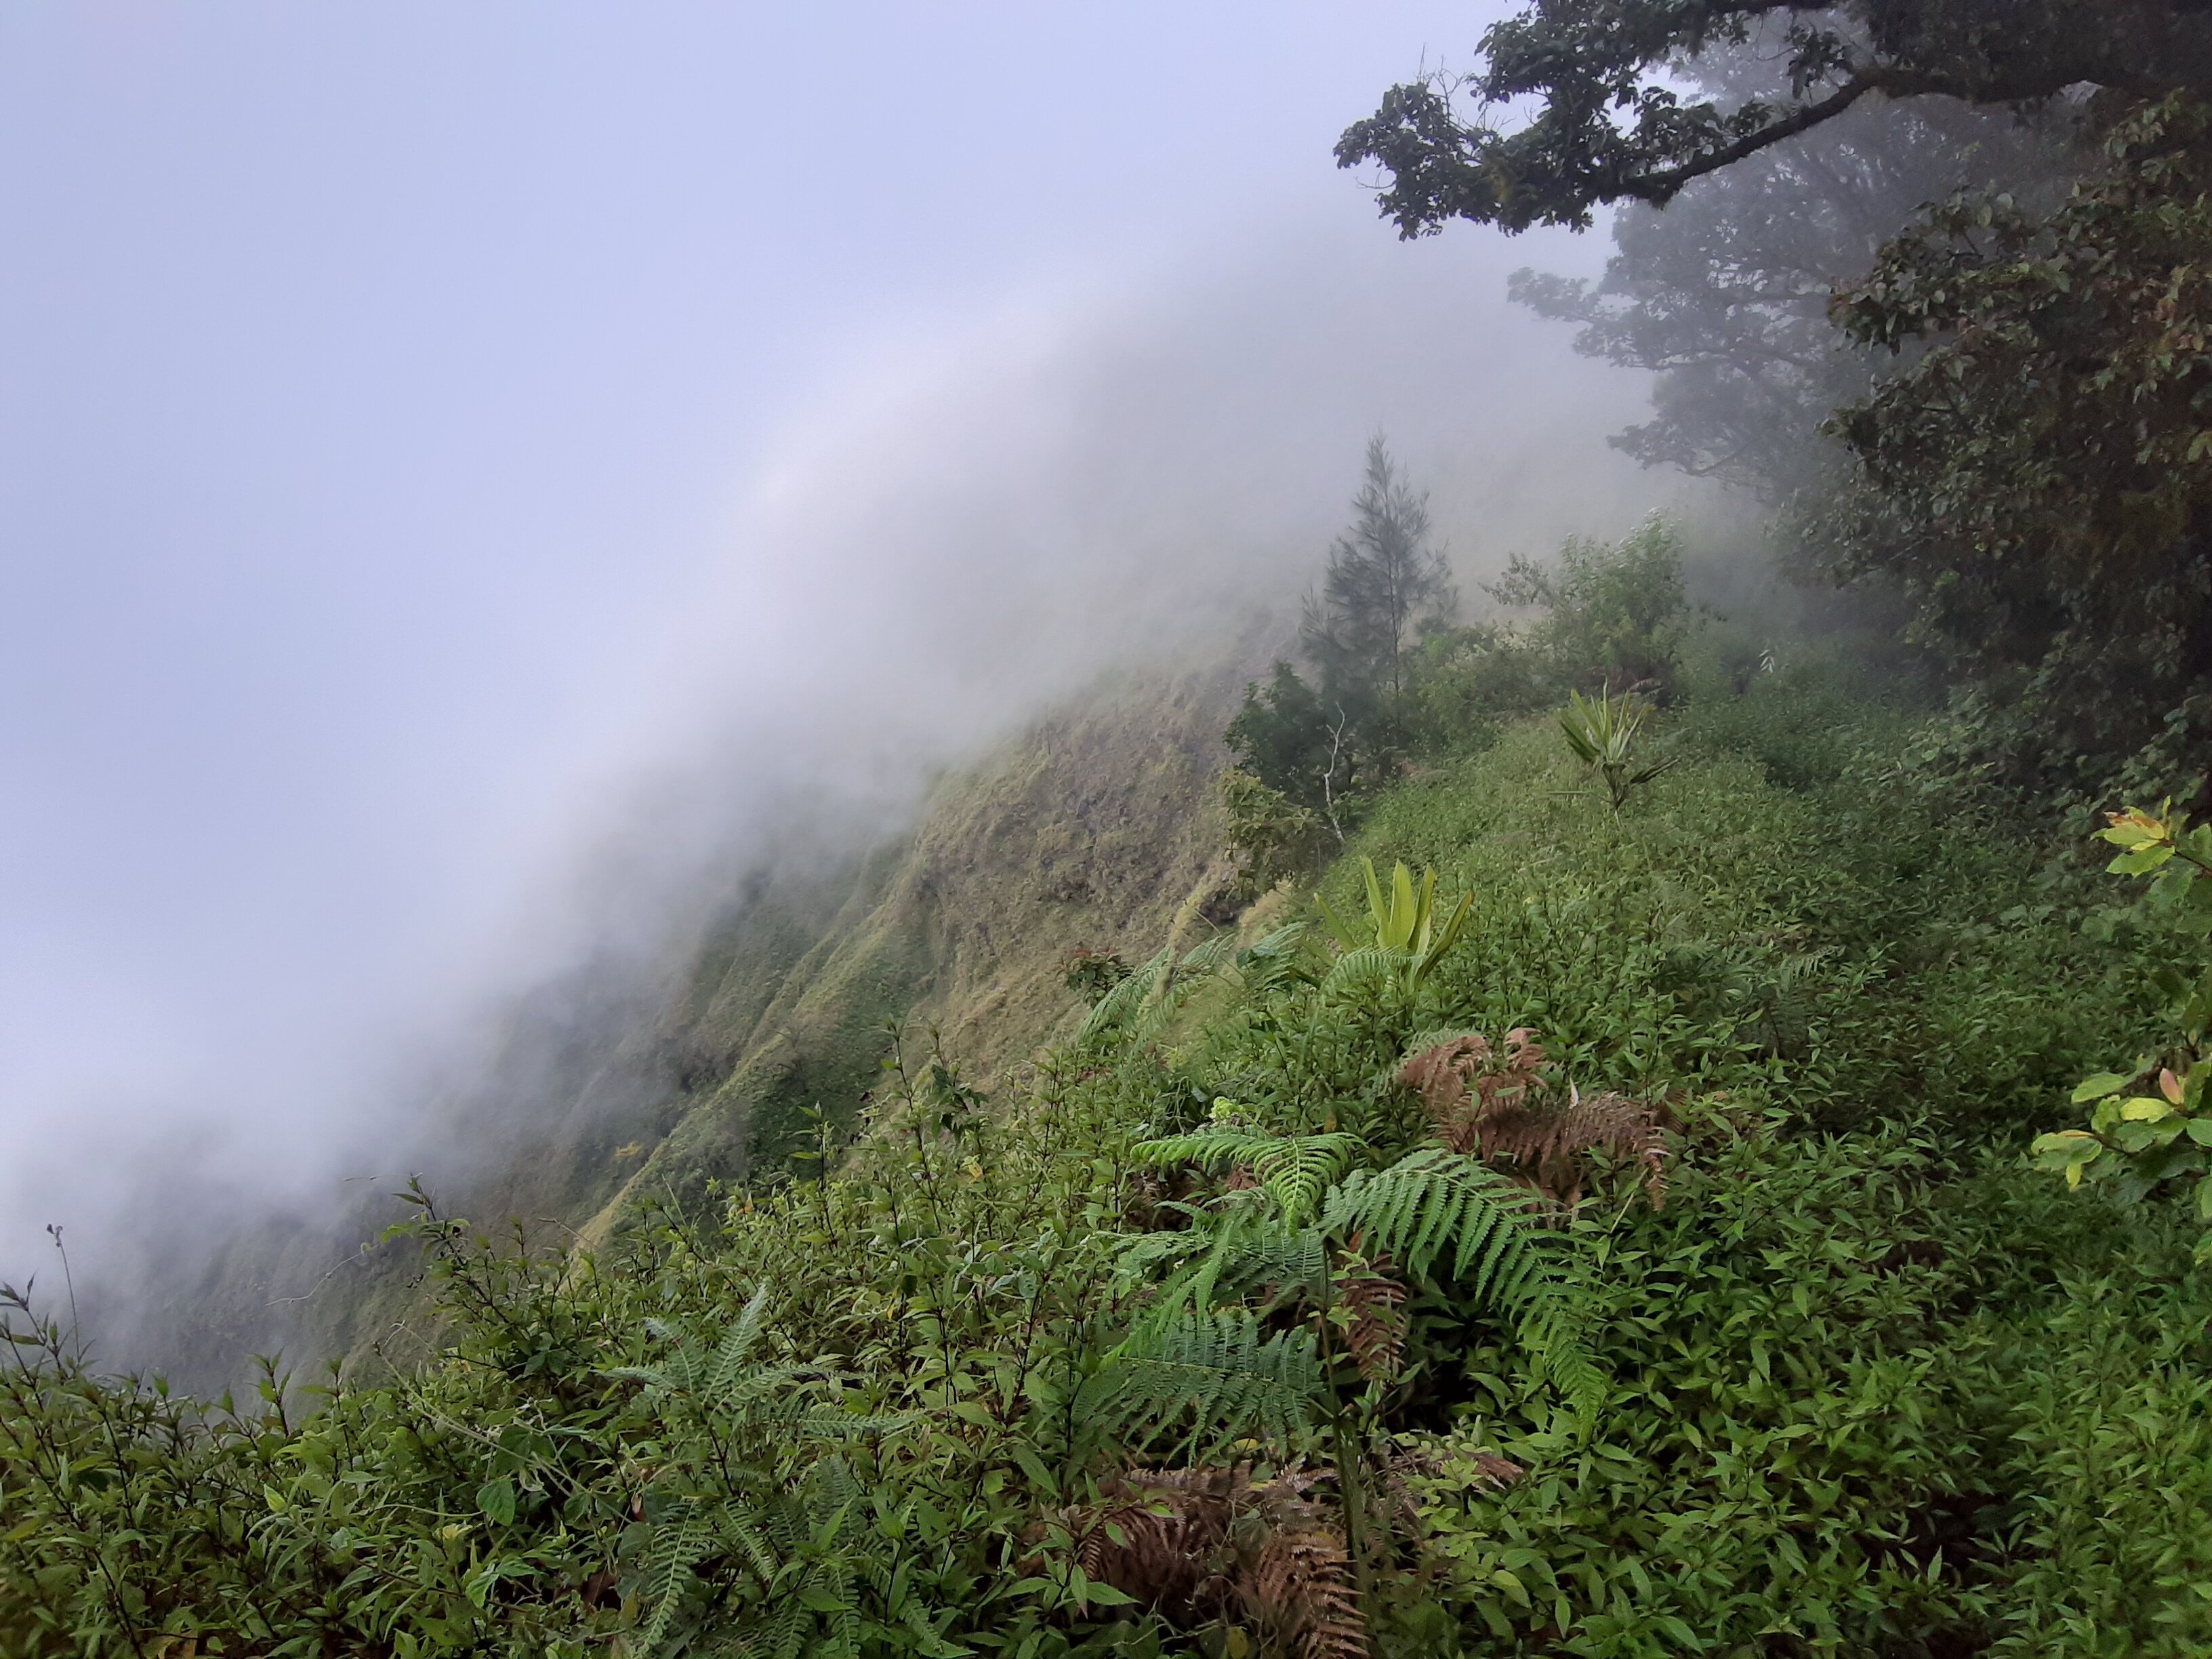 The misty and cloudy view from the mountainside.